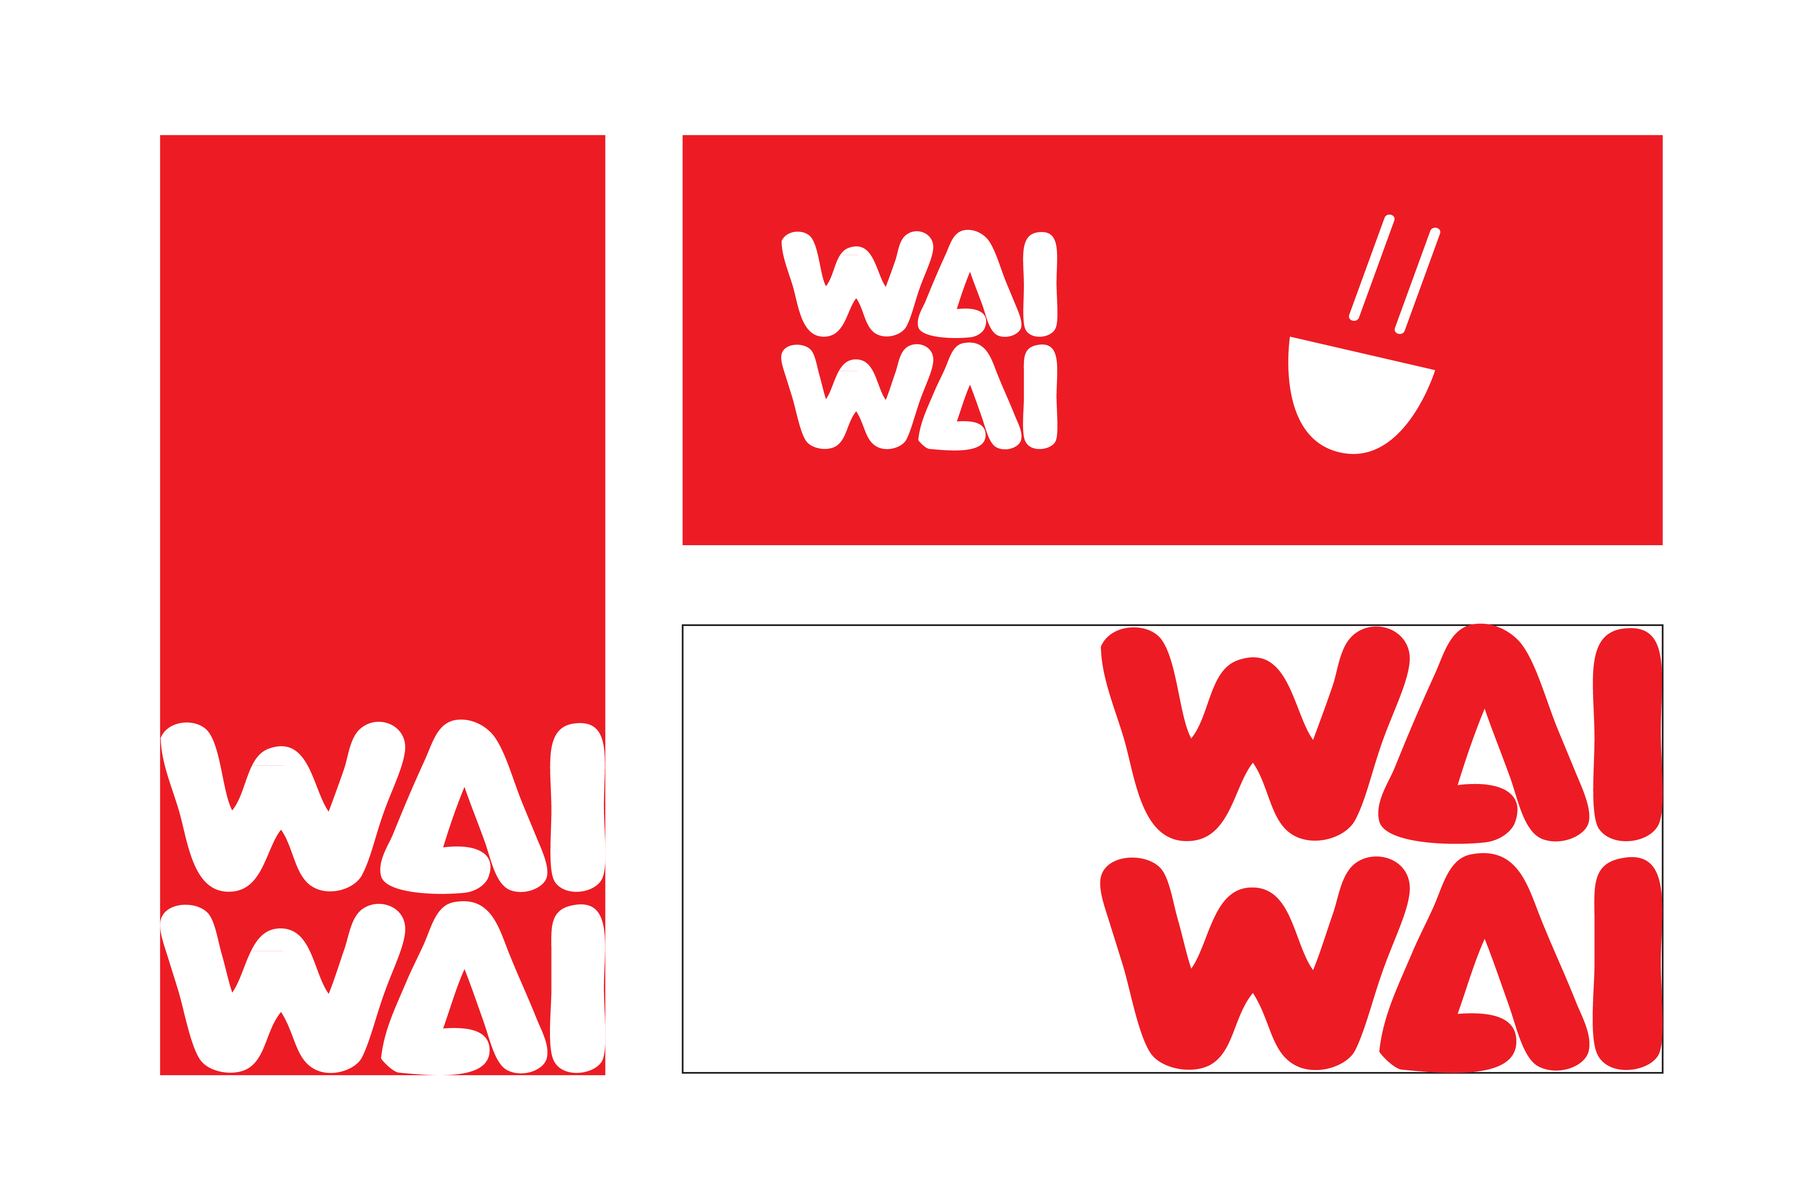 Cards for Wai Wai, illustrating its colour scheme and relation to its products.